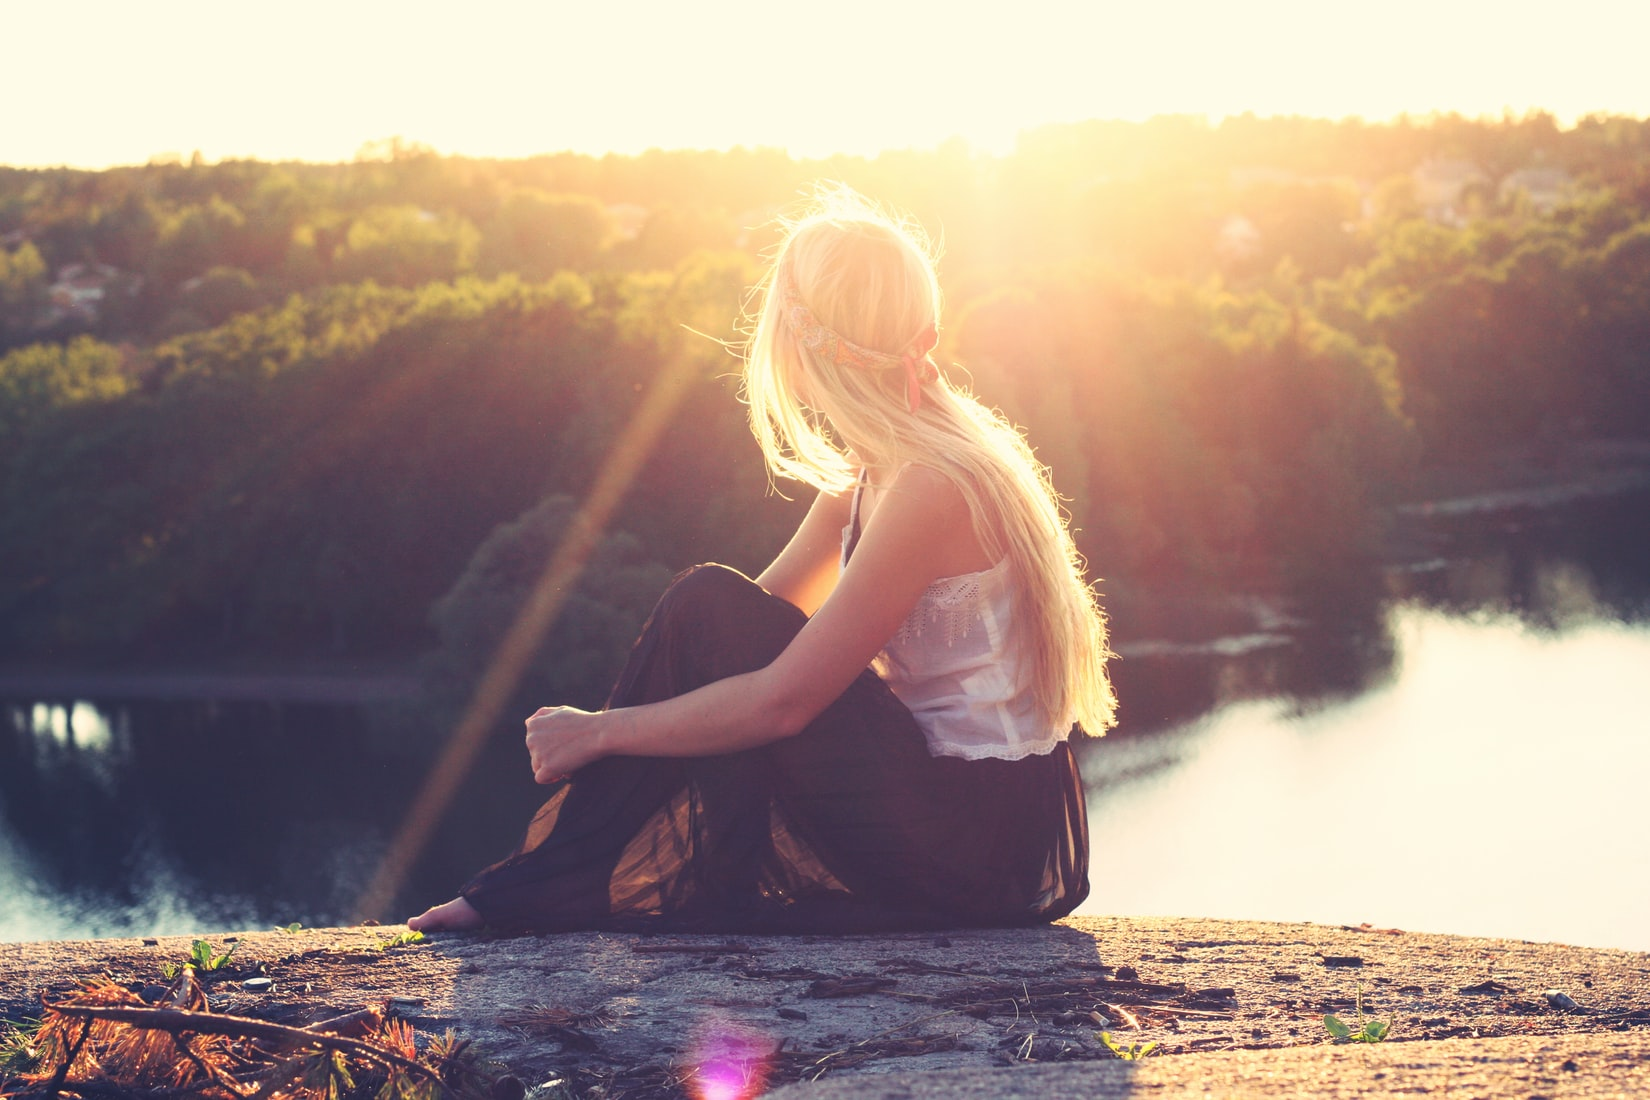 Young blonde woman sitting on cliff watching body of water and trees